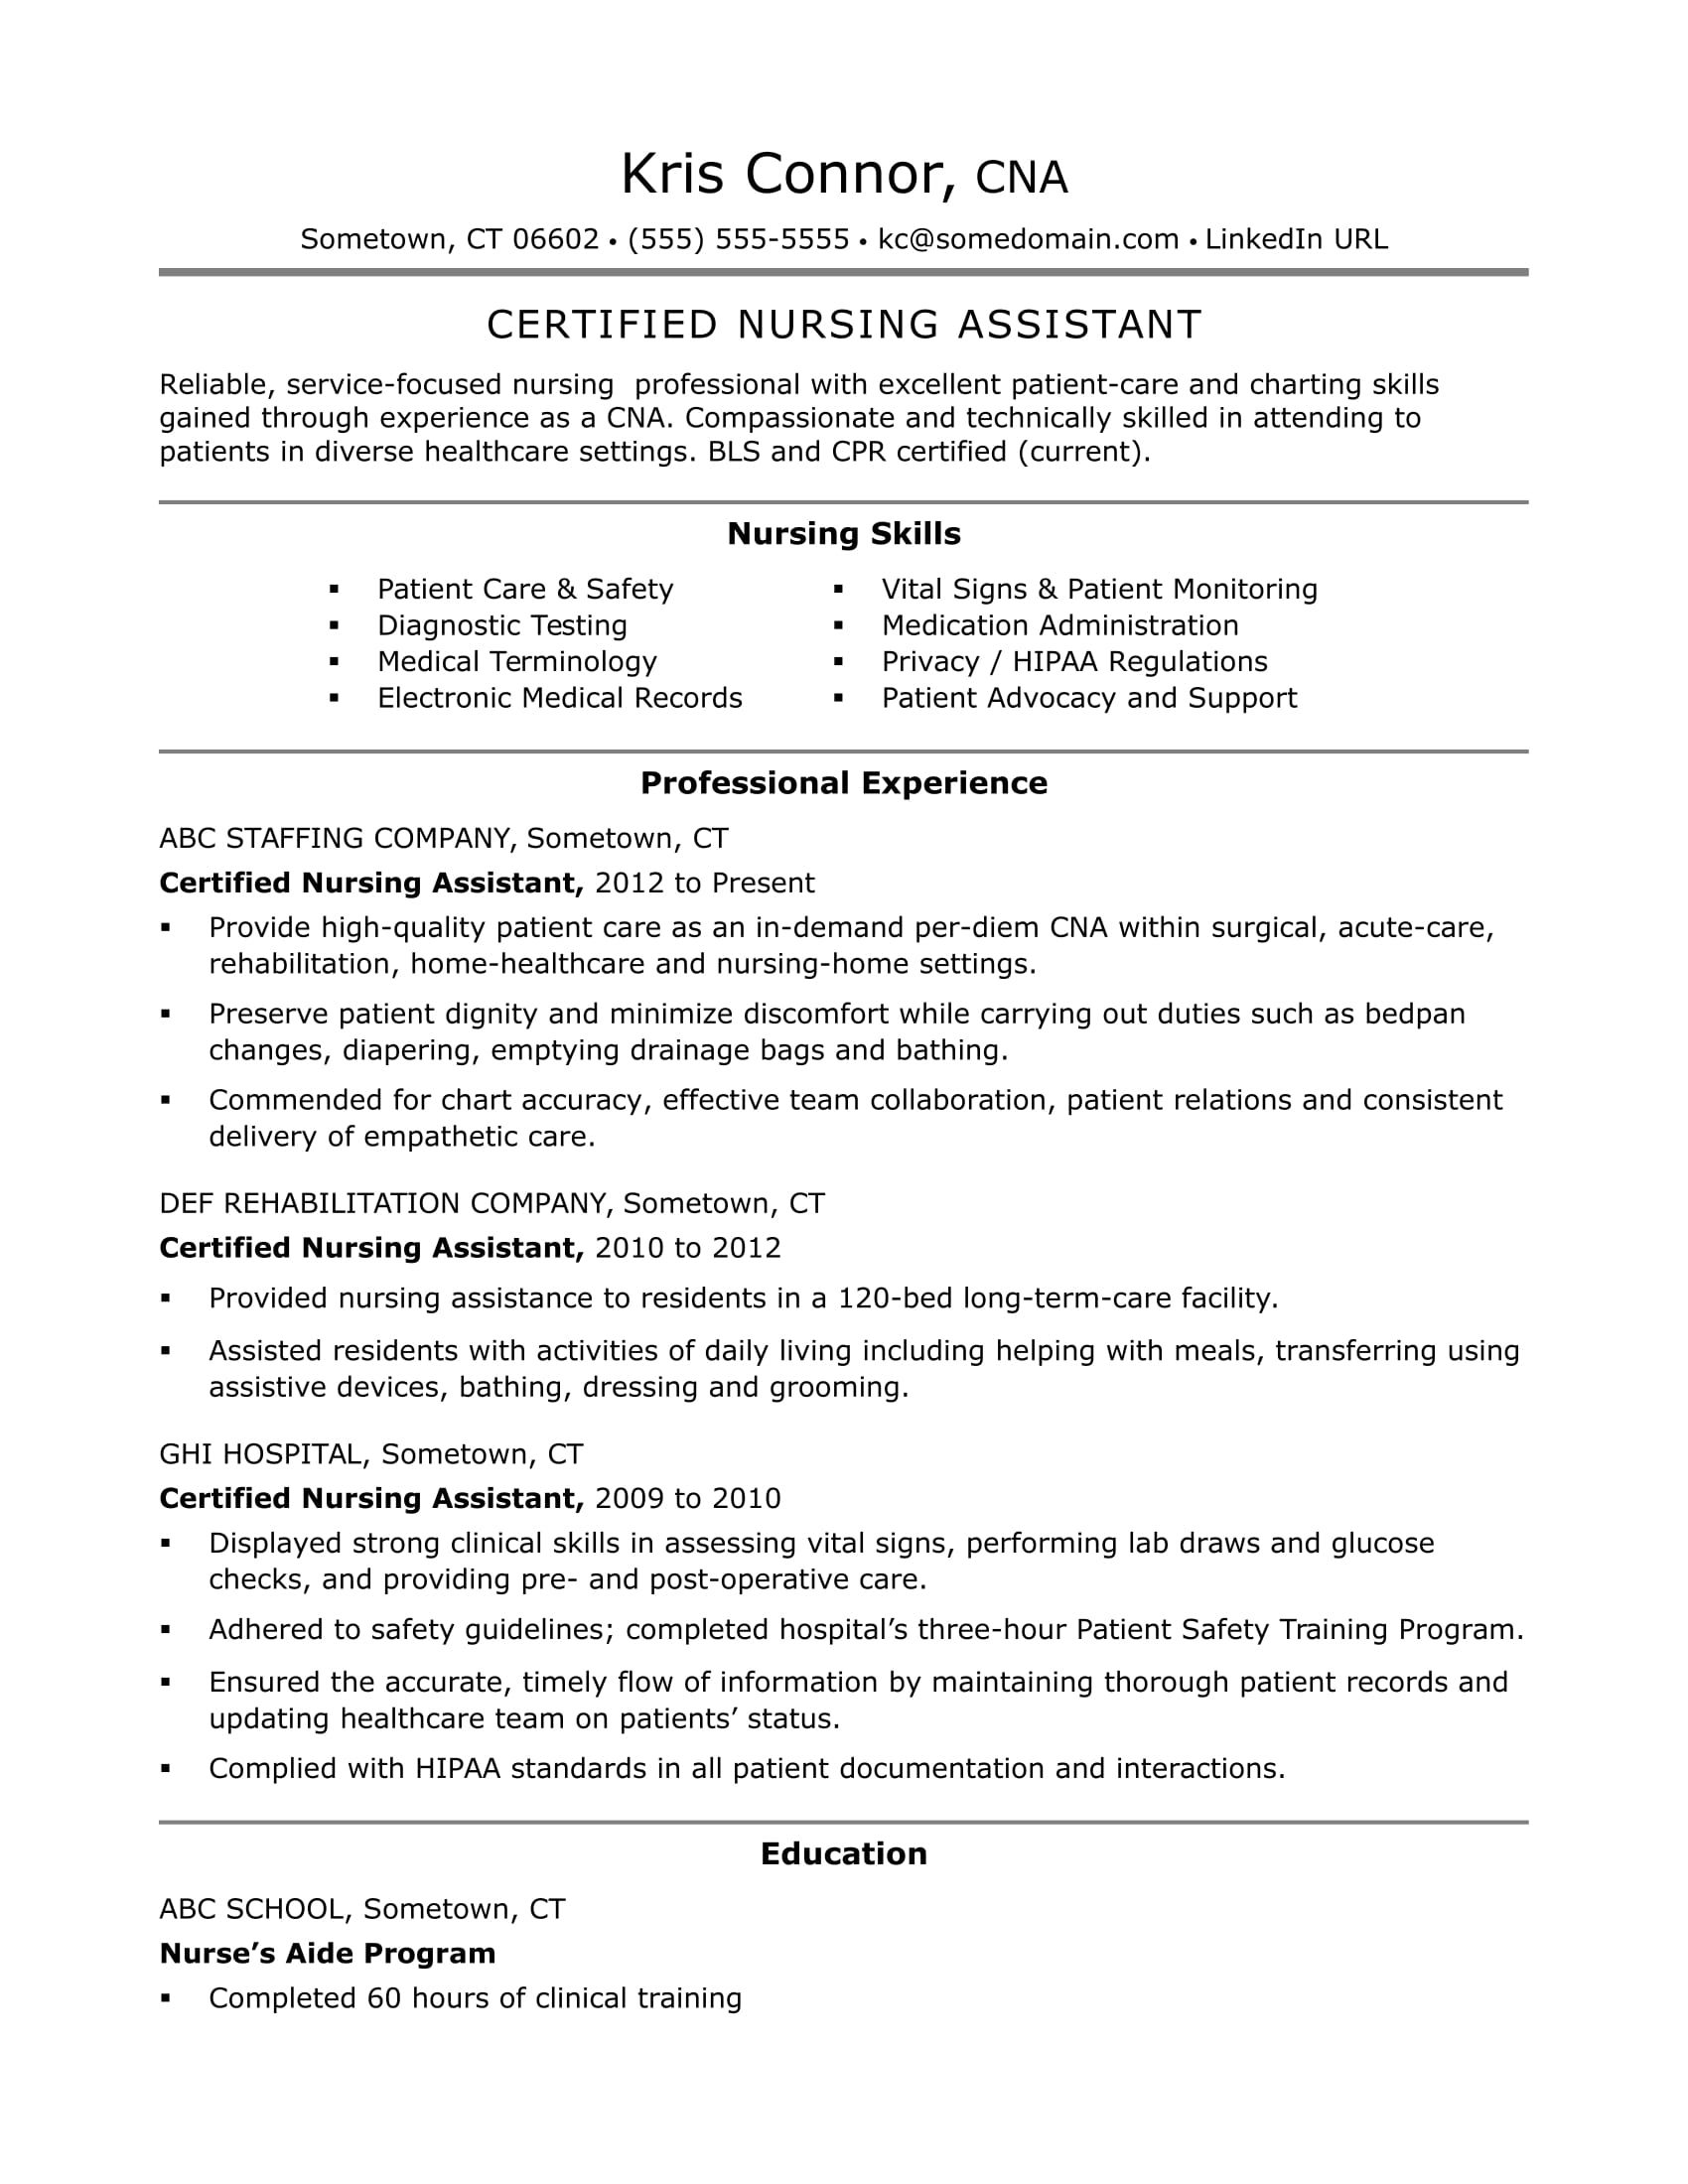 Attractive CNA Resume Example Idea Cna Resume Examples With Experience